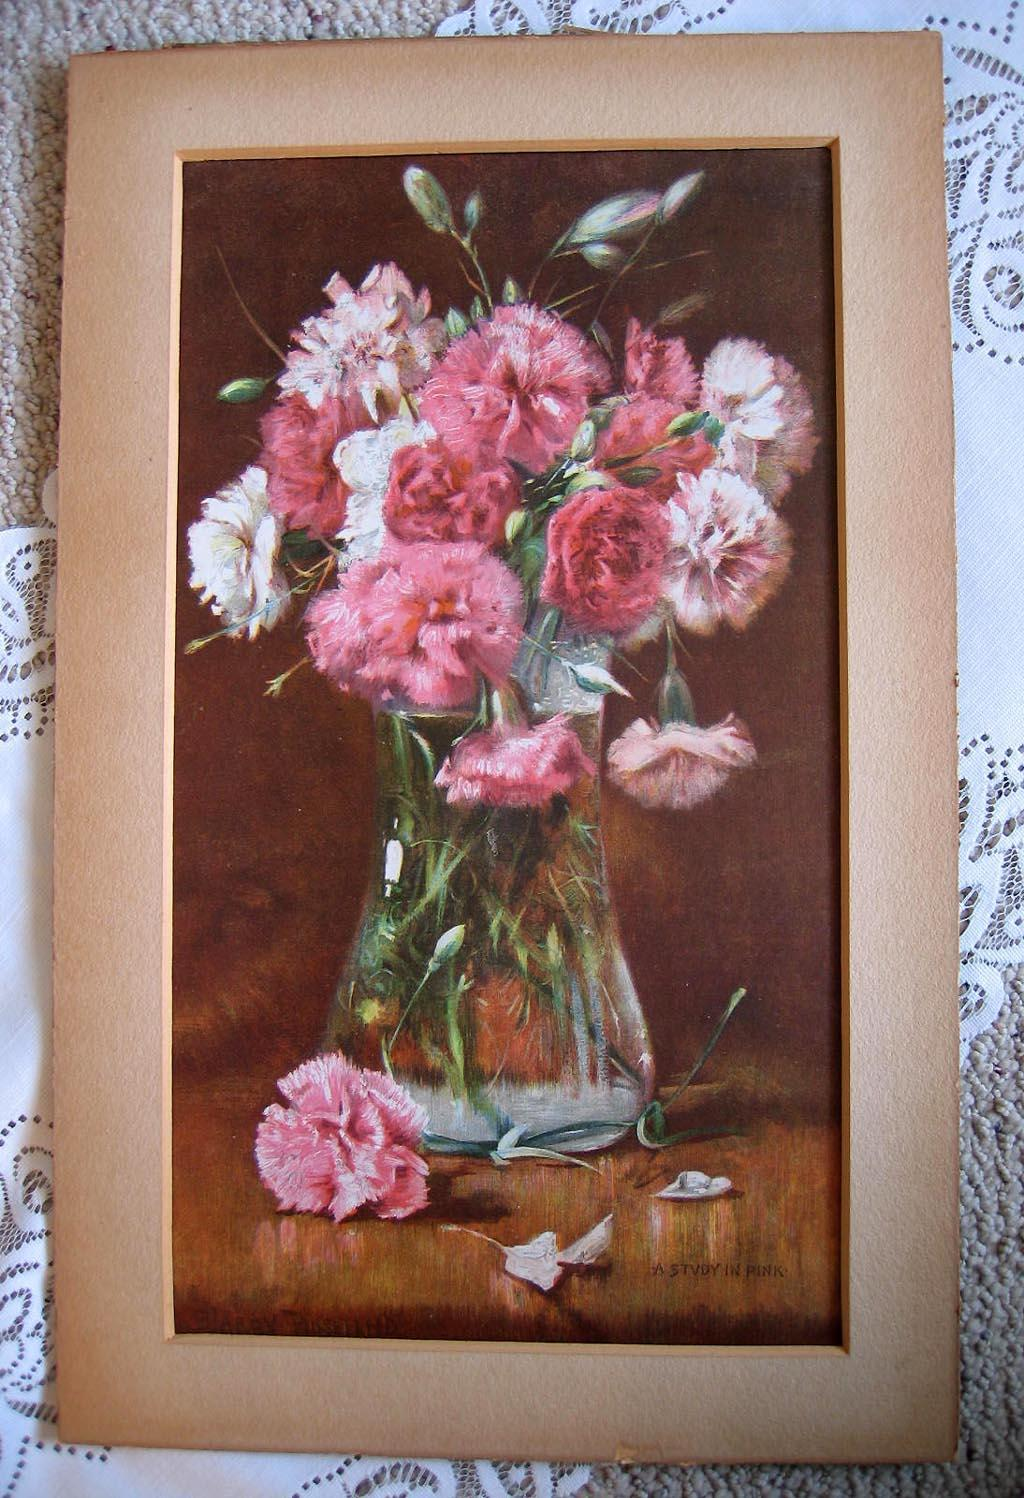 c1893 Flower Print A Study In Pink Carnations Harry Roseland Chromolithograph Floral Half Yard Long